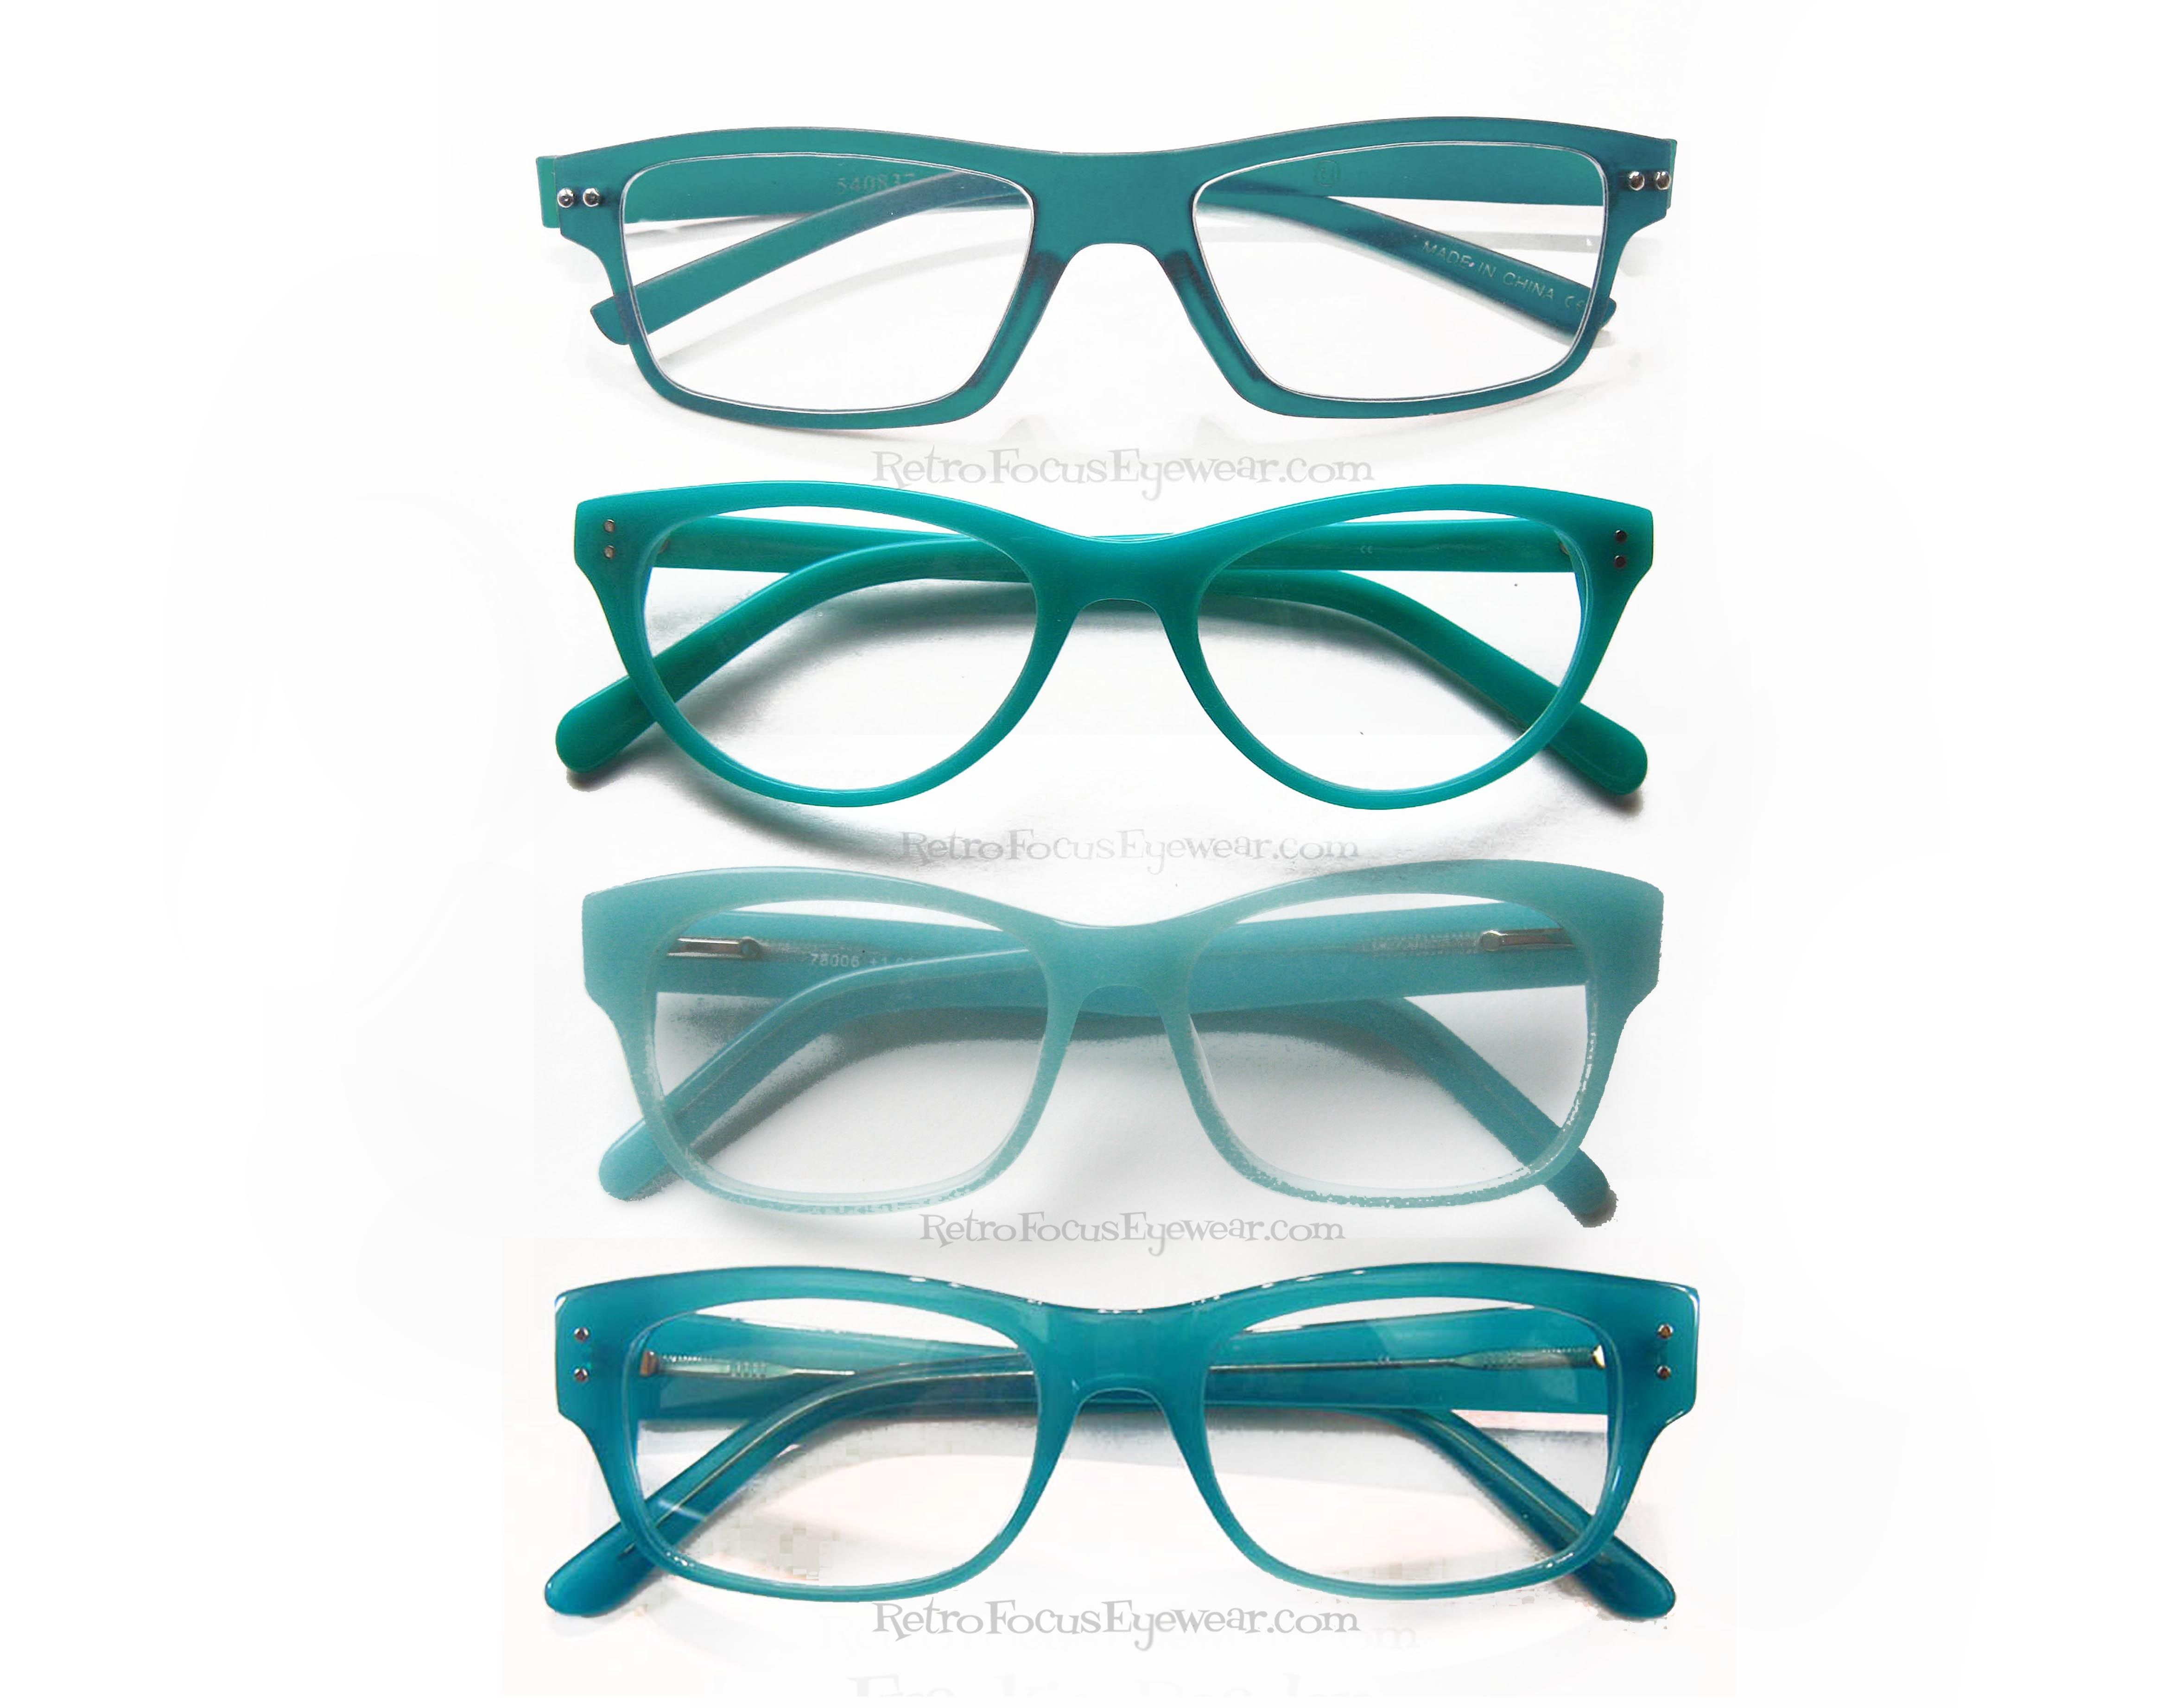 Pin by Retro Focus Eyewear LLC on All About Color   Pinterest ...